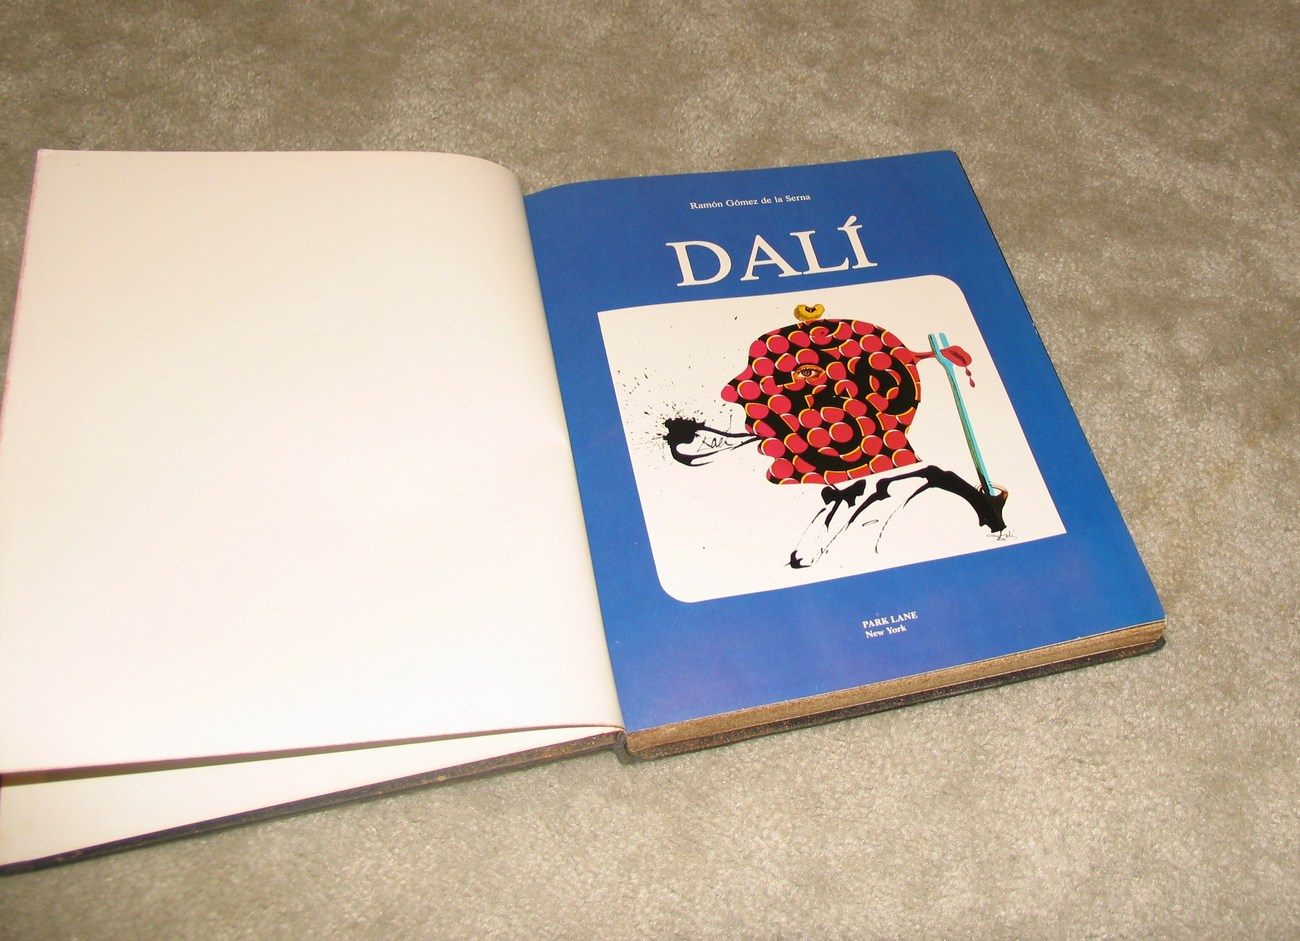 Dali 1977 by Ramon Gomez de la Serna Vintage Collectible Bk